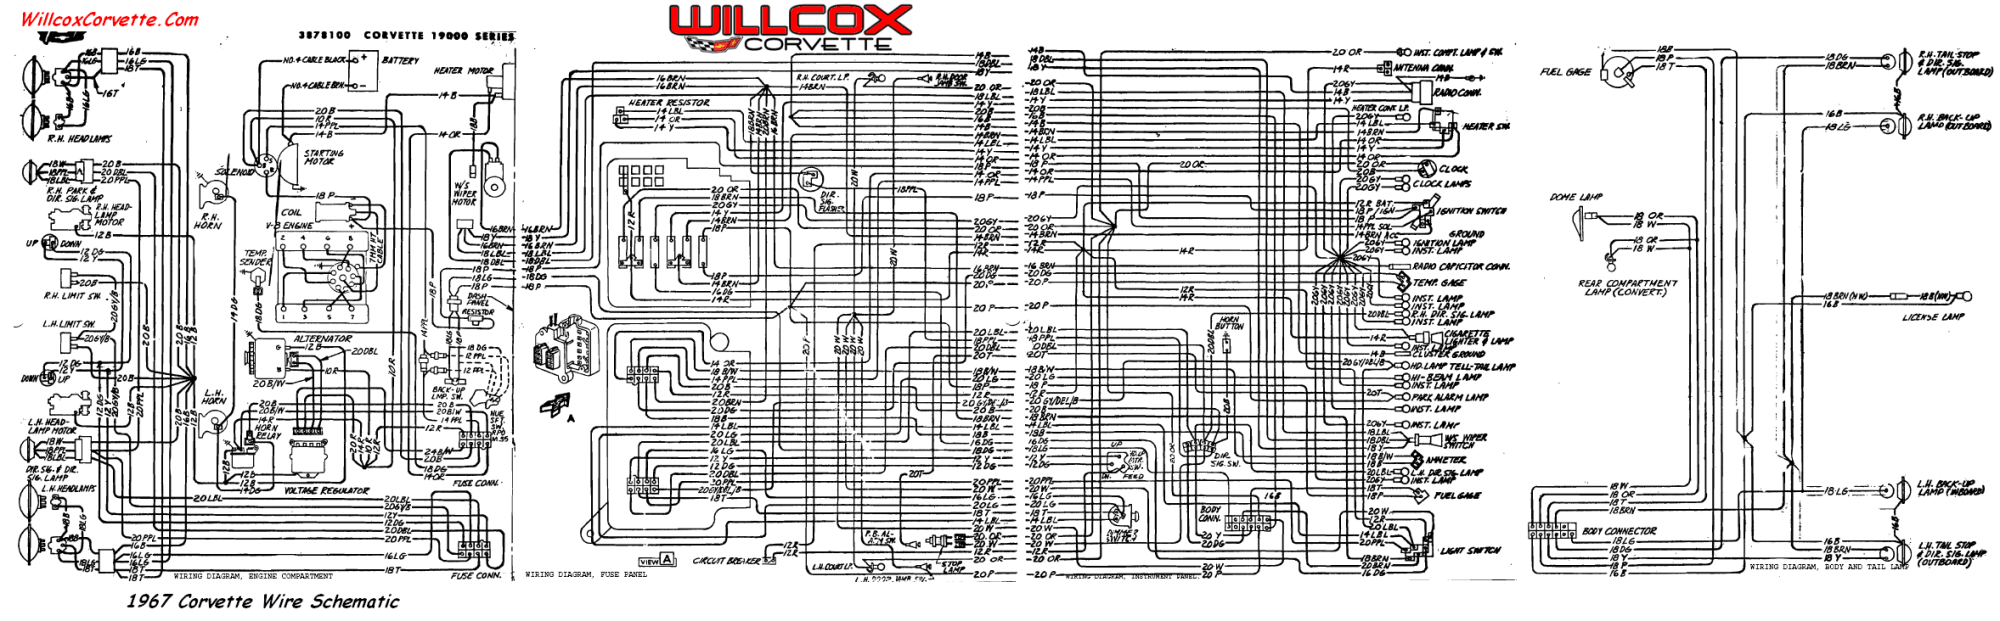 hight resolution of c3 corvette wiring diagram wiring diagram todays rh 7 11 10 1813weddingbarn com 1977 corvette starter wiring diagram 1977 corvette ignition wiring diagram